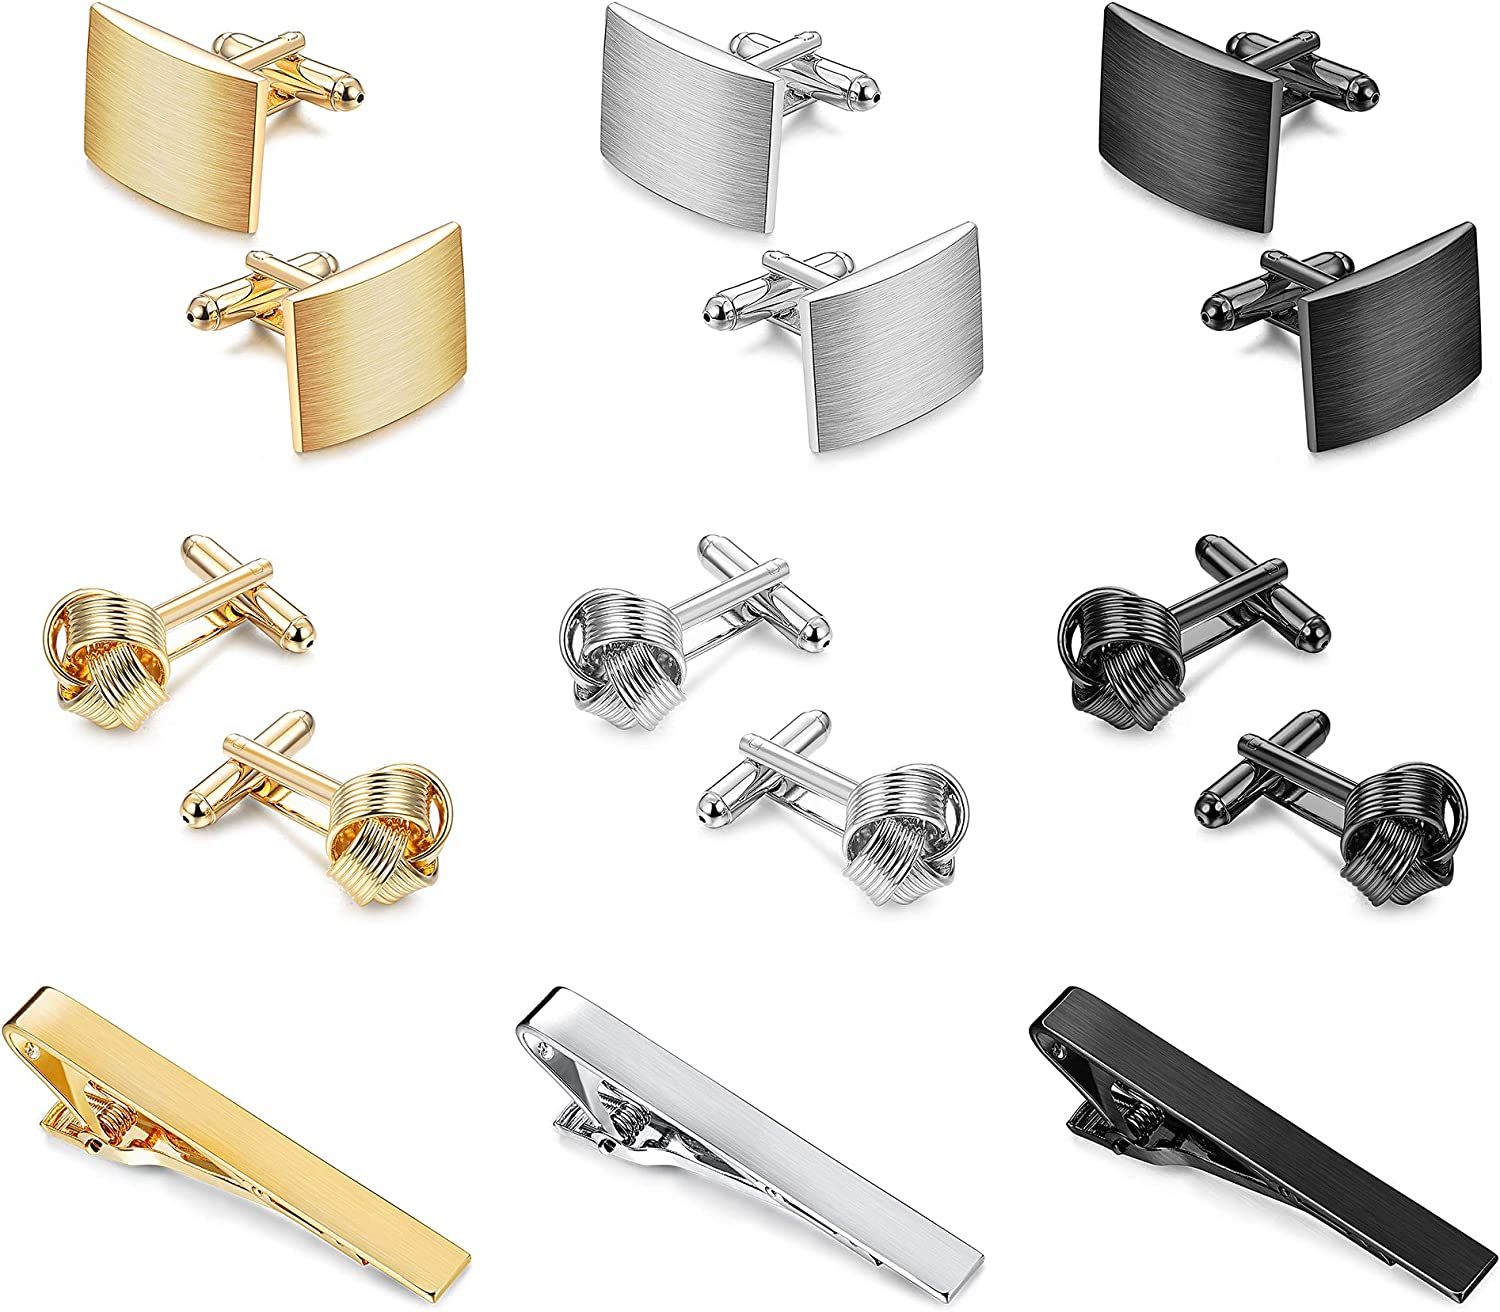 YADOCA Tie Clips Cufflinks Set for Men Tie Bar Clip for Men Black Silver-Tone Gold-Tone for Wedding Business Copper Shirt Button Classic Jewelry